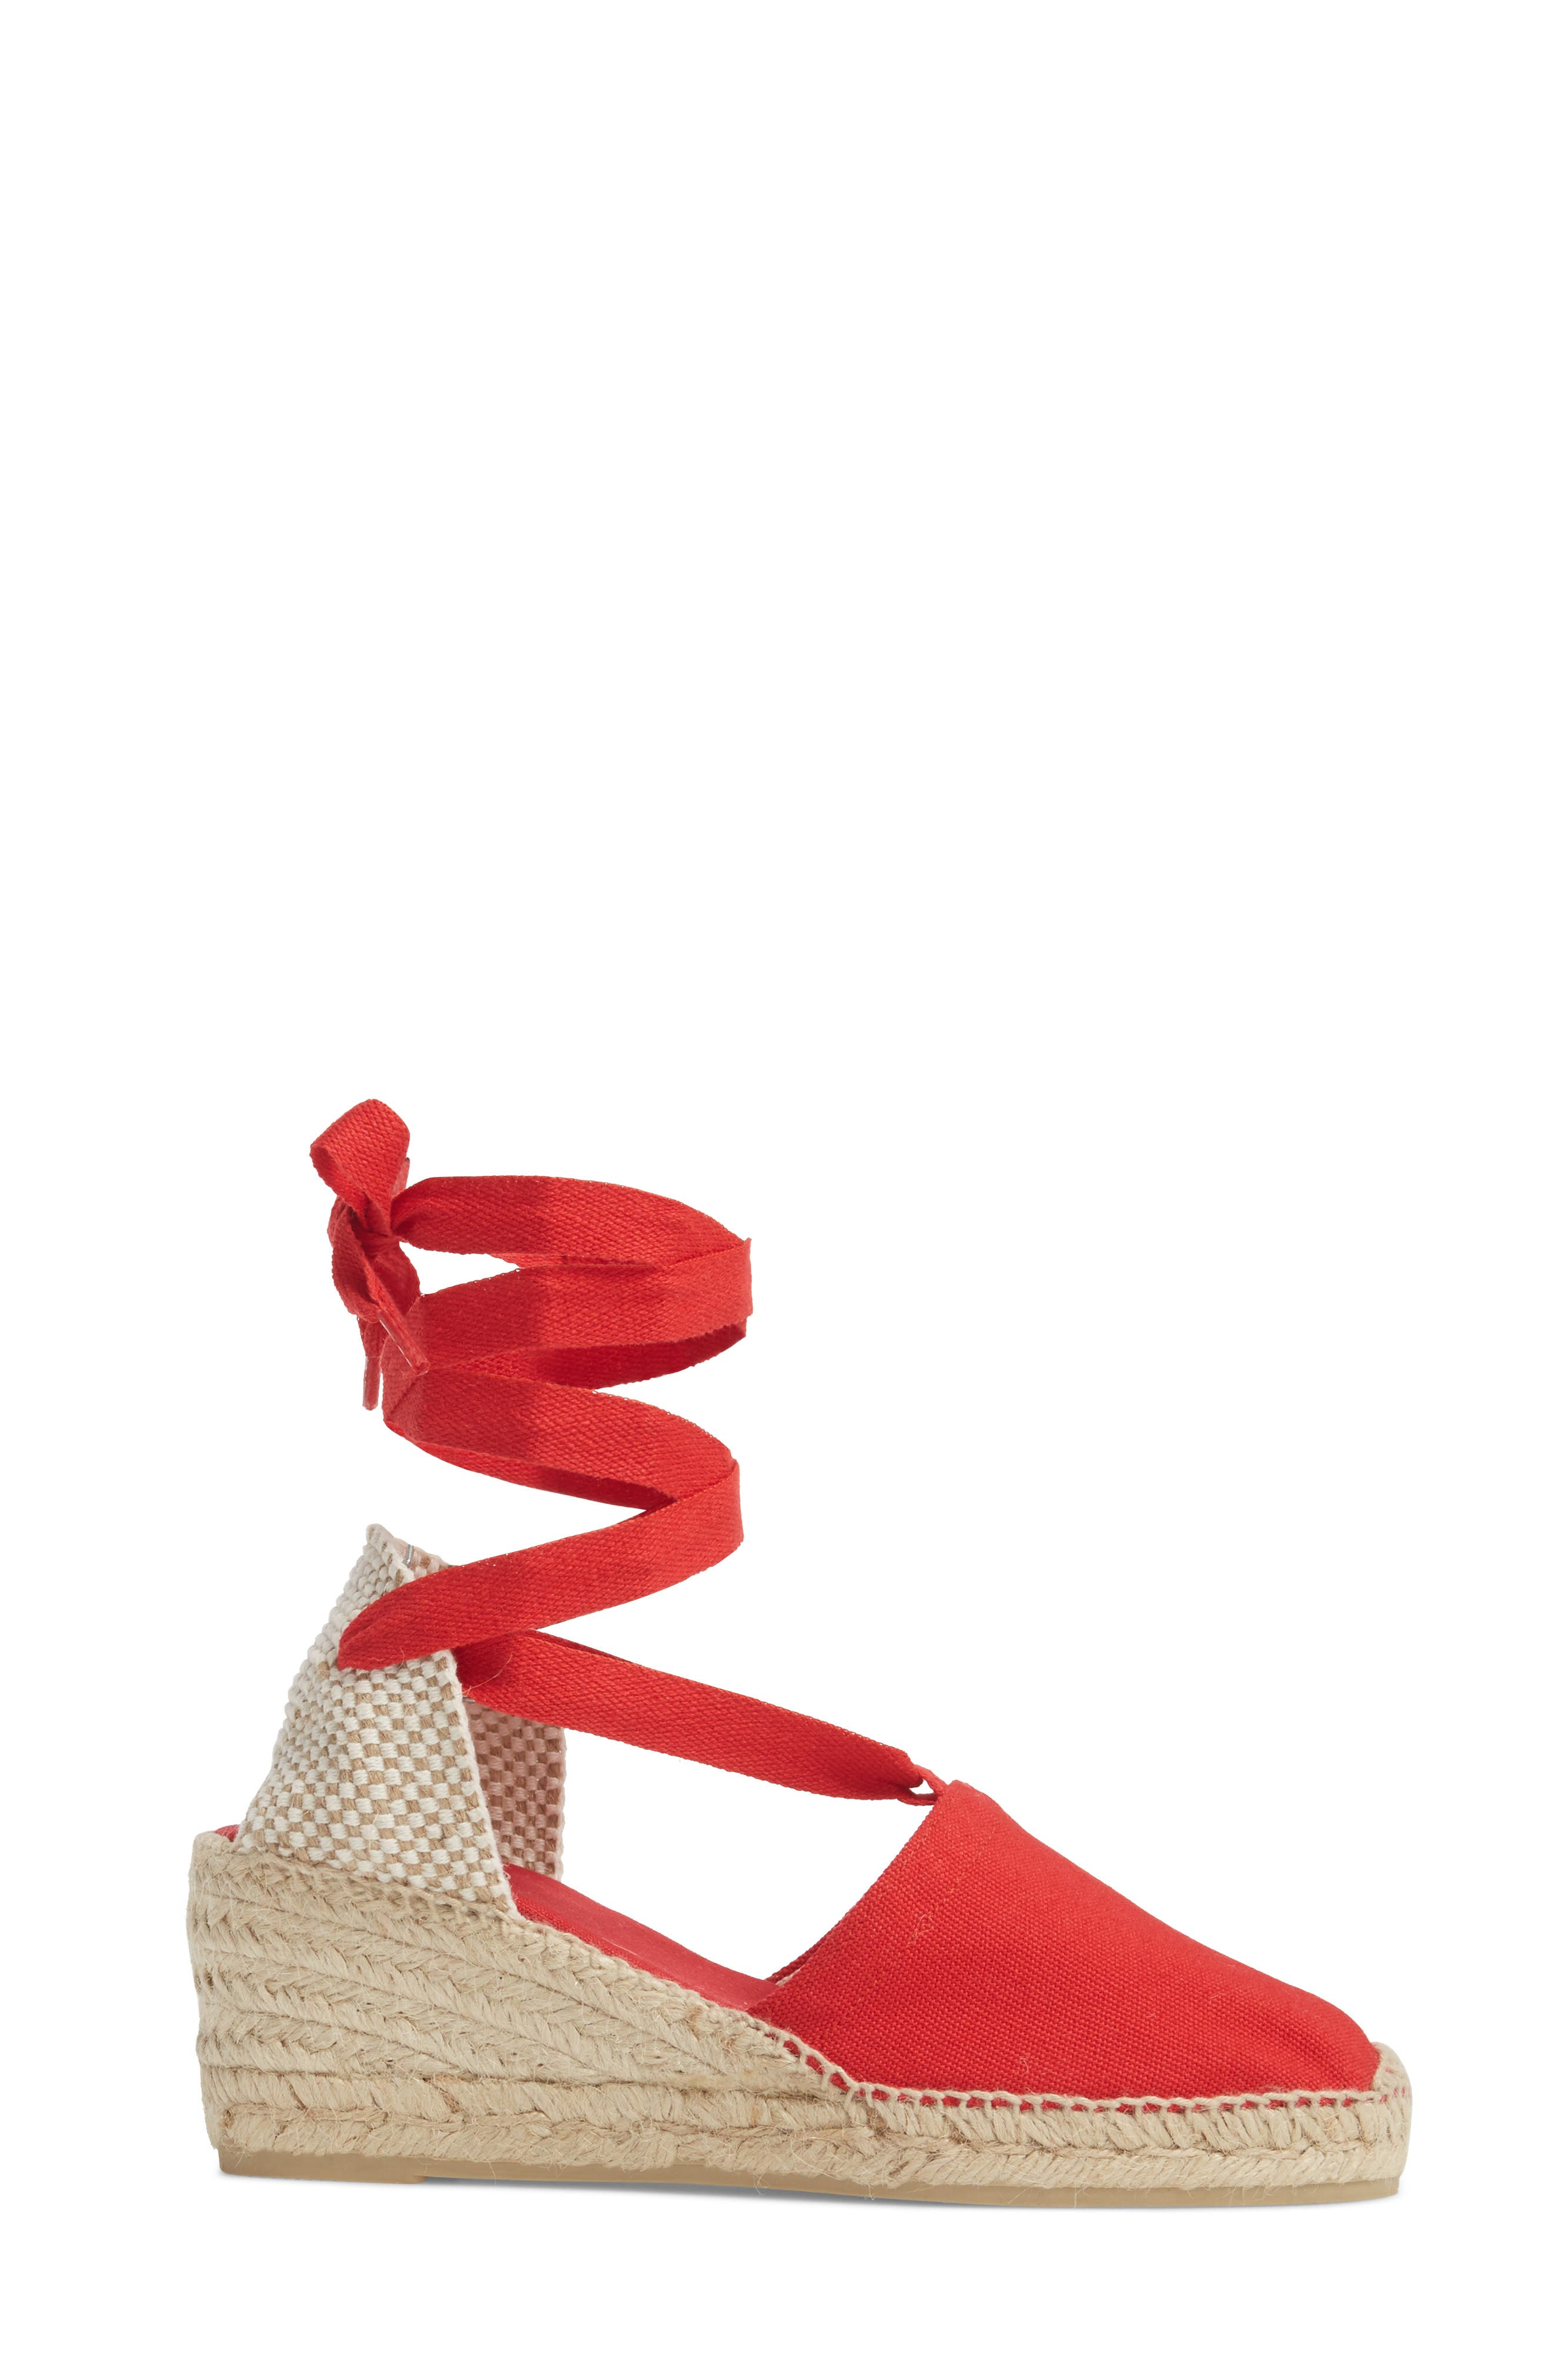 Valencia Wraparound Espadrille Wedge,                             Alternate thumbnail 3, color,                             Red Fabric